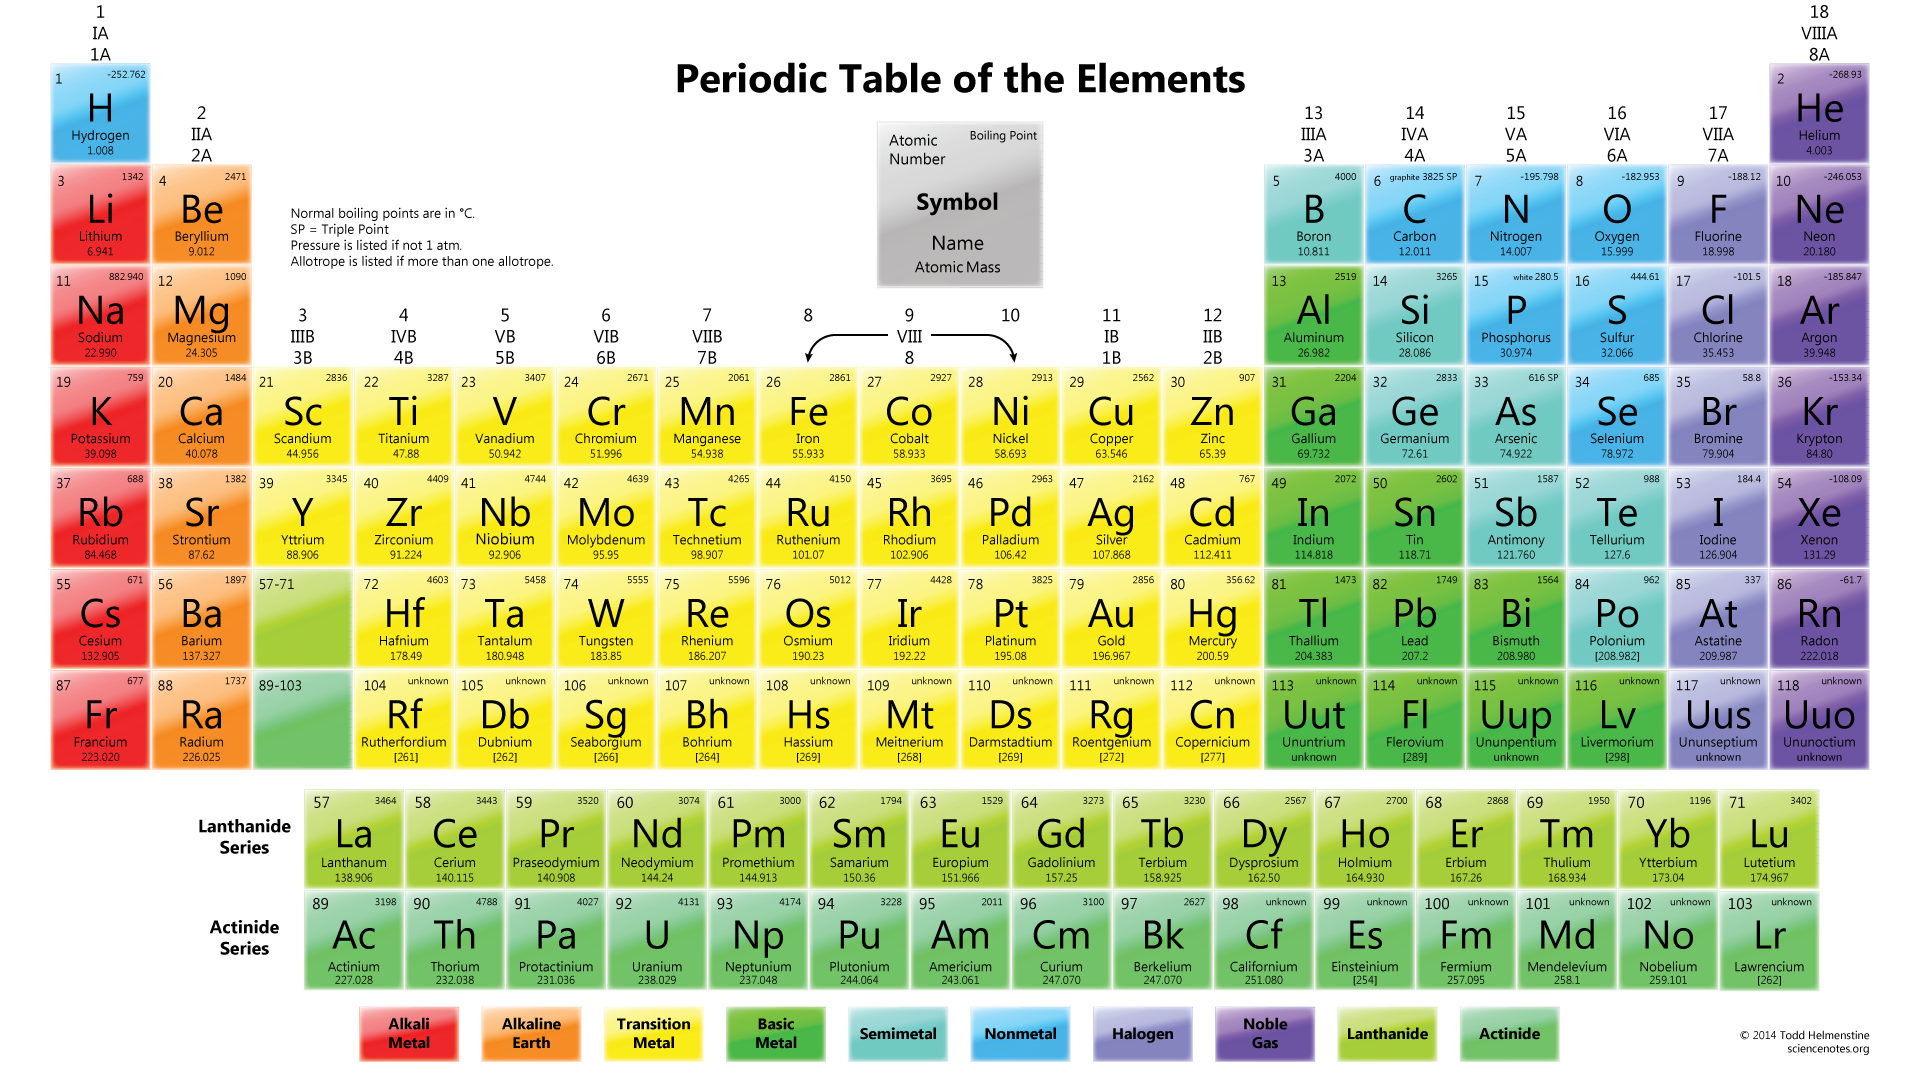 30 printable periodic tables for chemistry science notes and projects color periodic table of the elements with boiling points urtaz Images